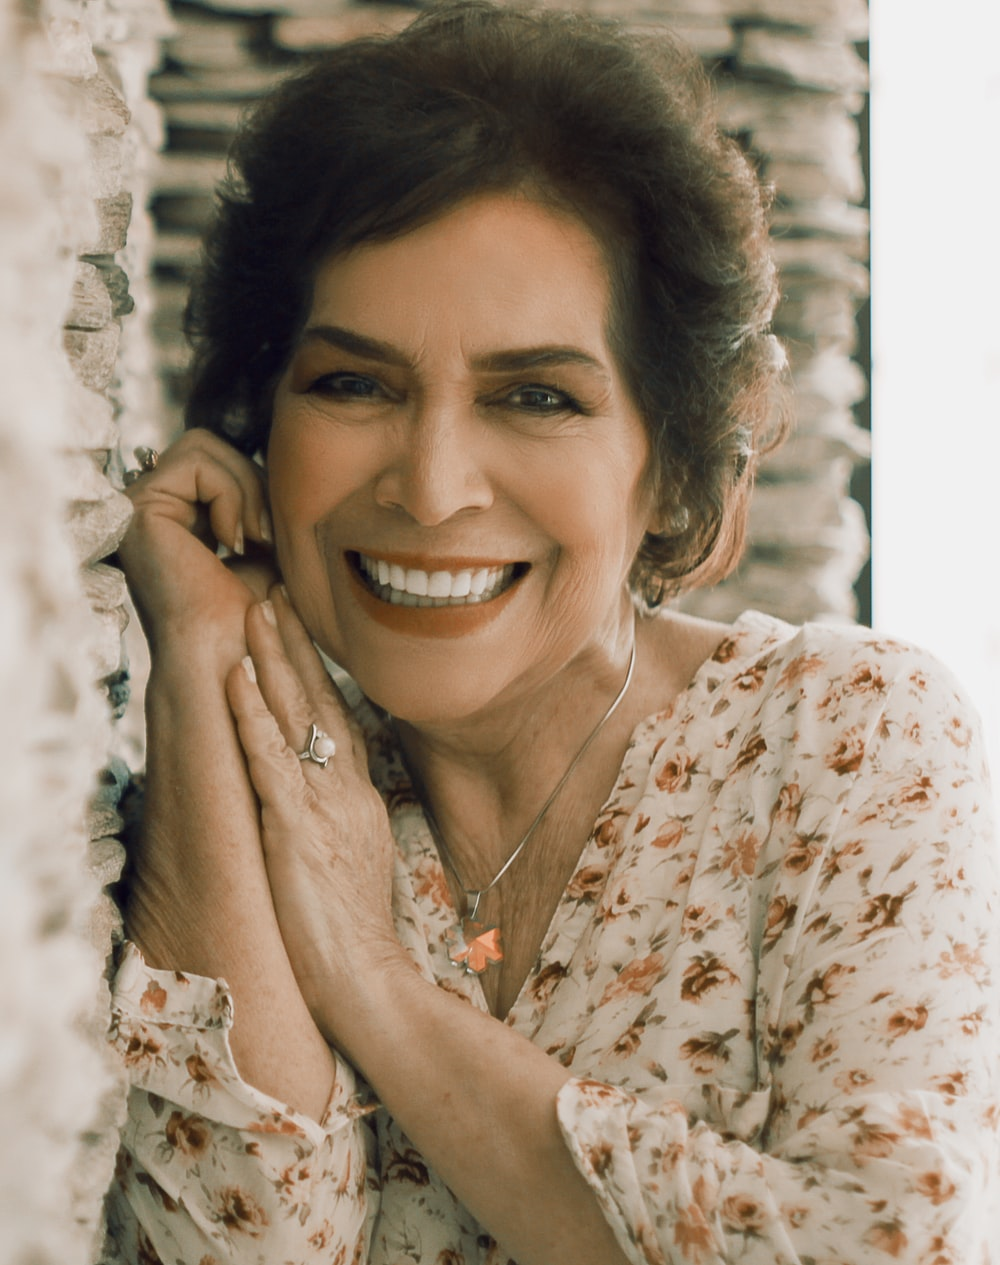 woman in white and orange floral shirt smiling